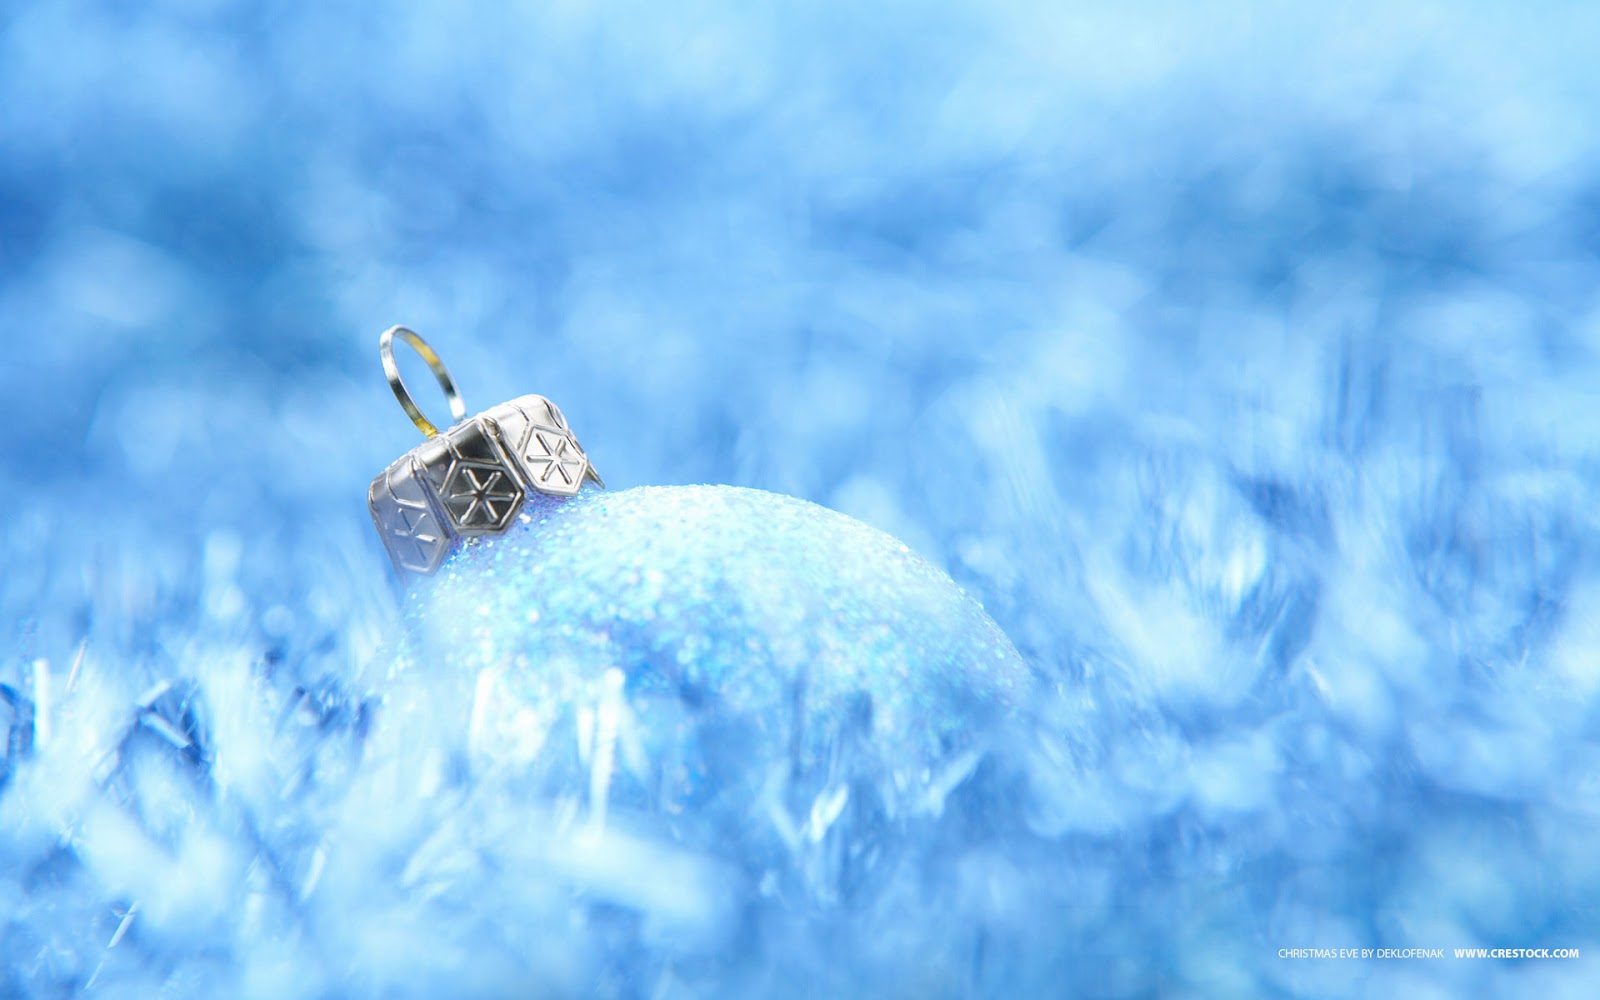 Wallpapers Snow Theme Merry Christmas Backgrounds Wallpapers 1600x1000